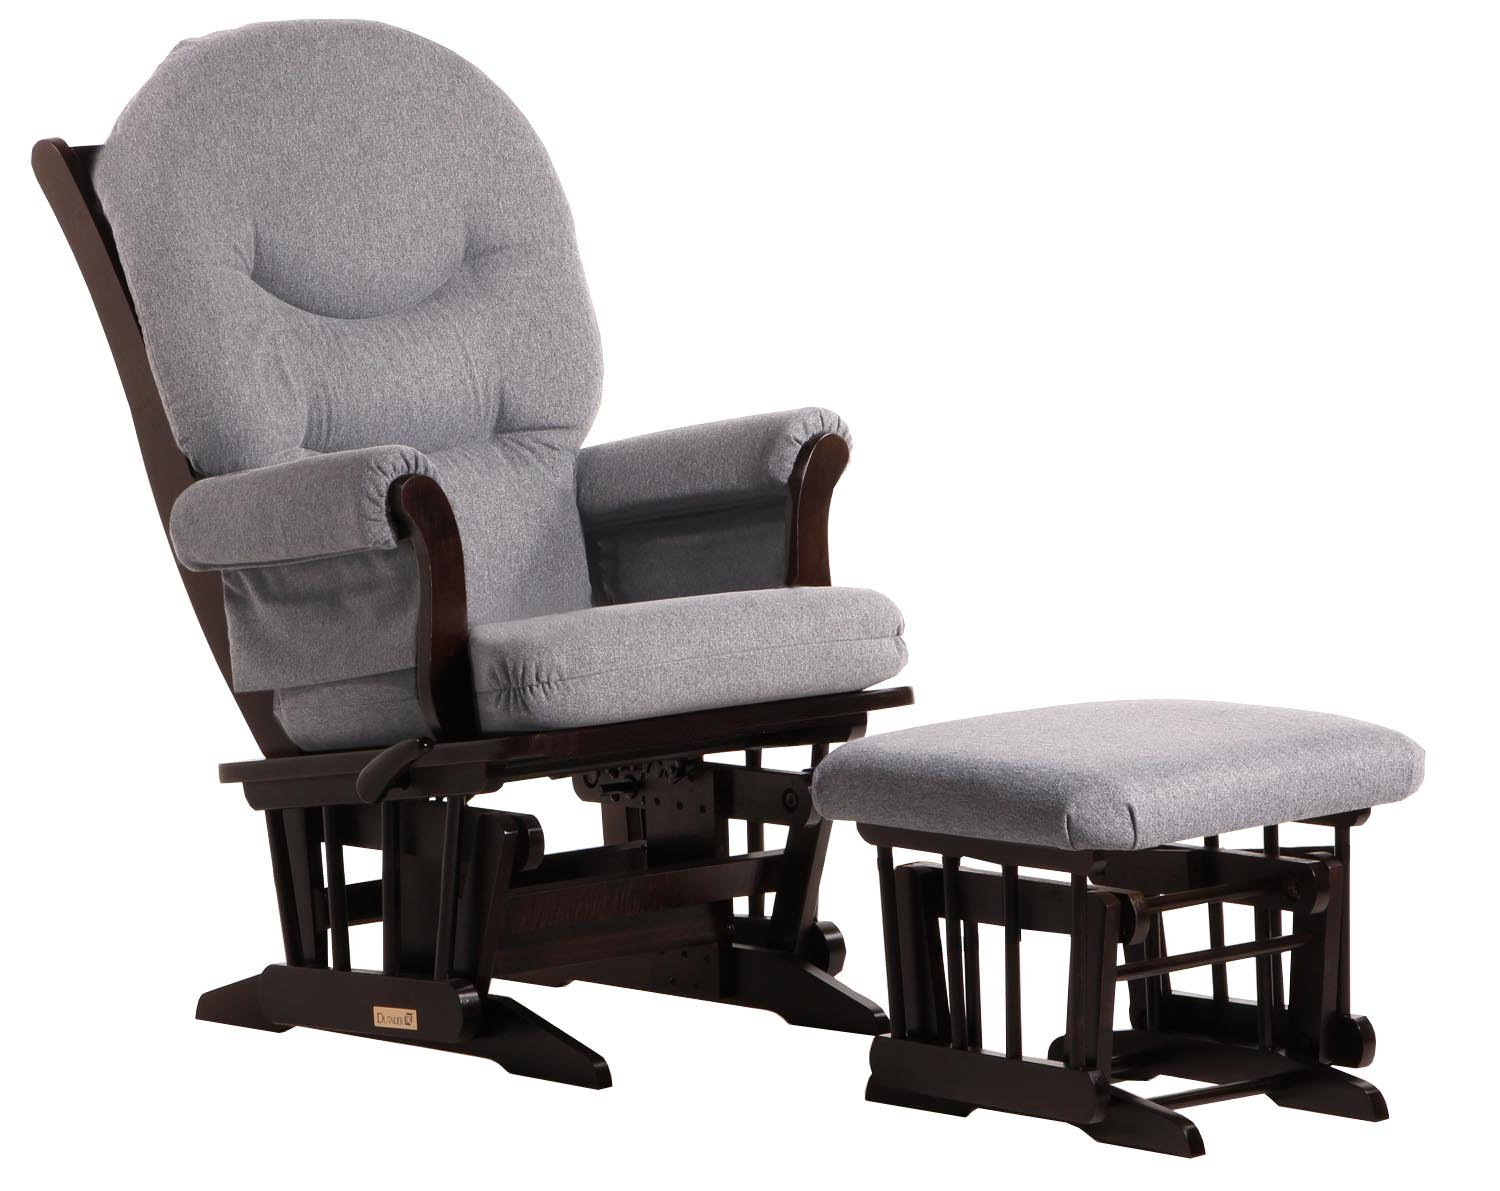 Amazon.com Dutailier Sleigh Glider-Multi-Position Recline and Nursing Ottoman Combo Espresso/Dark Grey Baby  sc 1 st  Amazon.com : reclining glider and ottoman - islam-shia.org